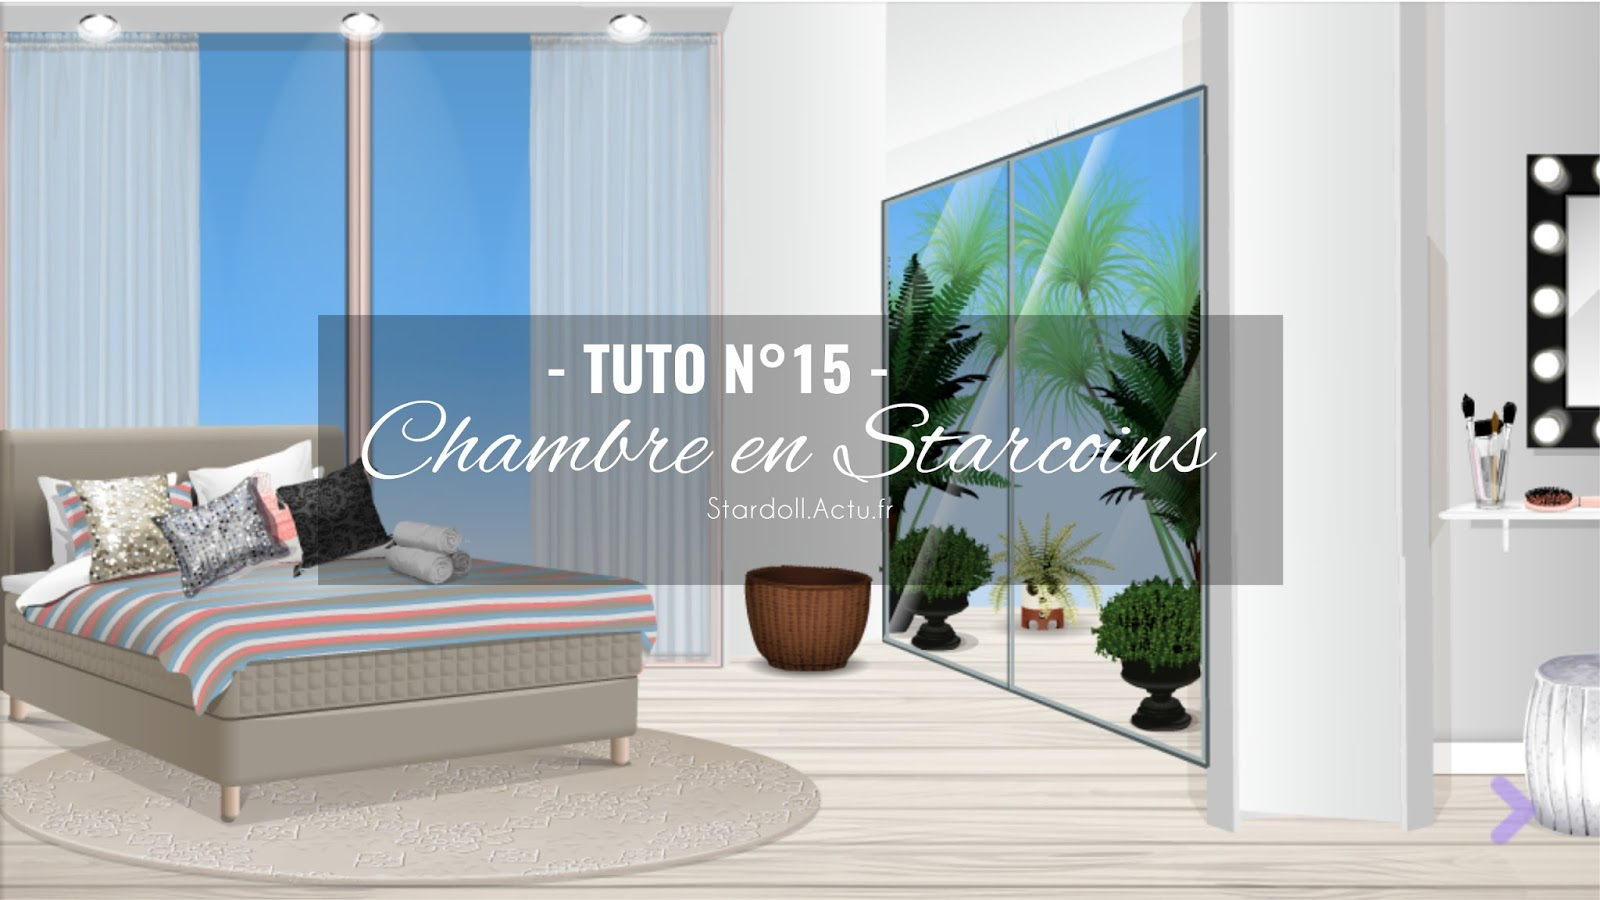 stardoll actu tuto n 15 chambre en starcoins concours deco. Black Bedroom Furniture Sets. Home Design Ideas